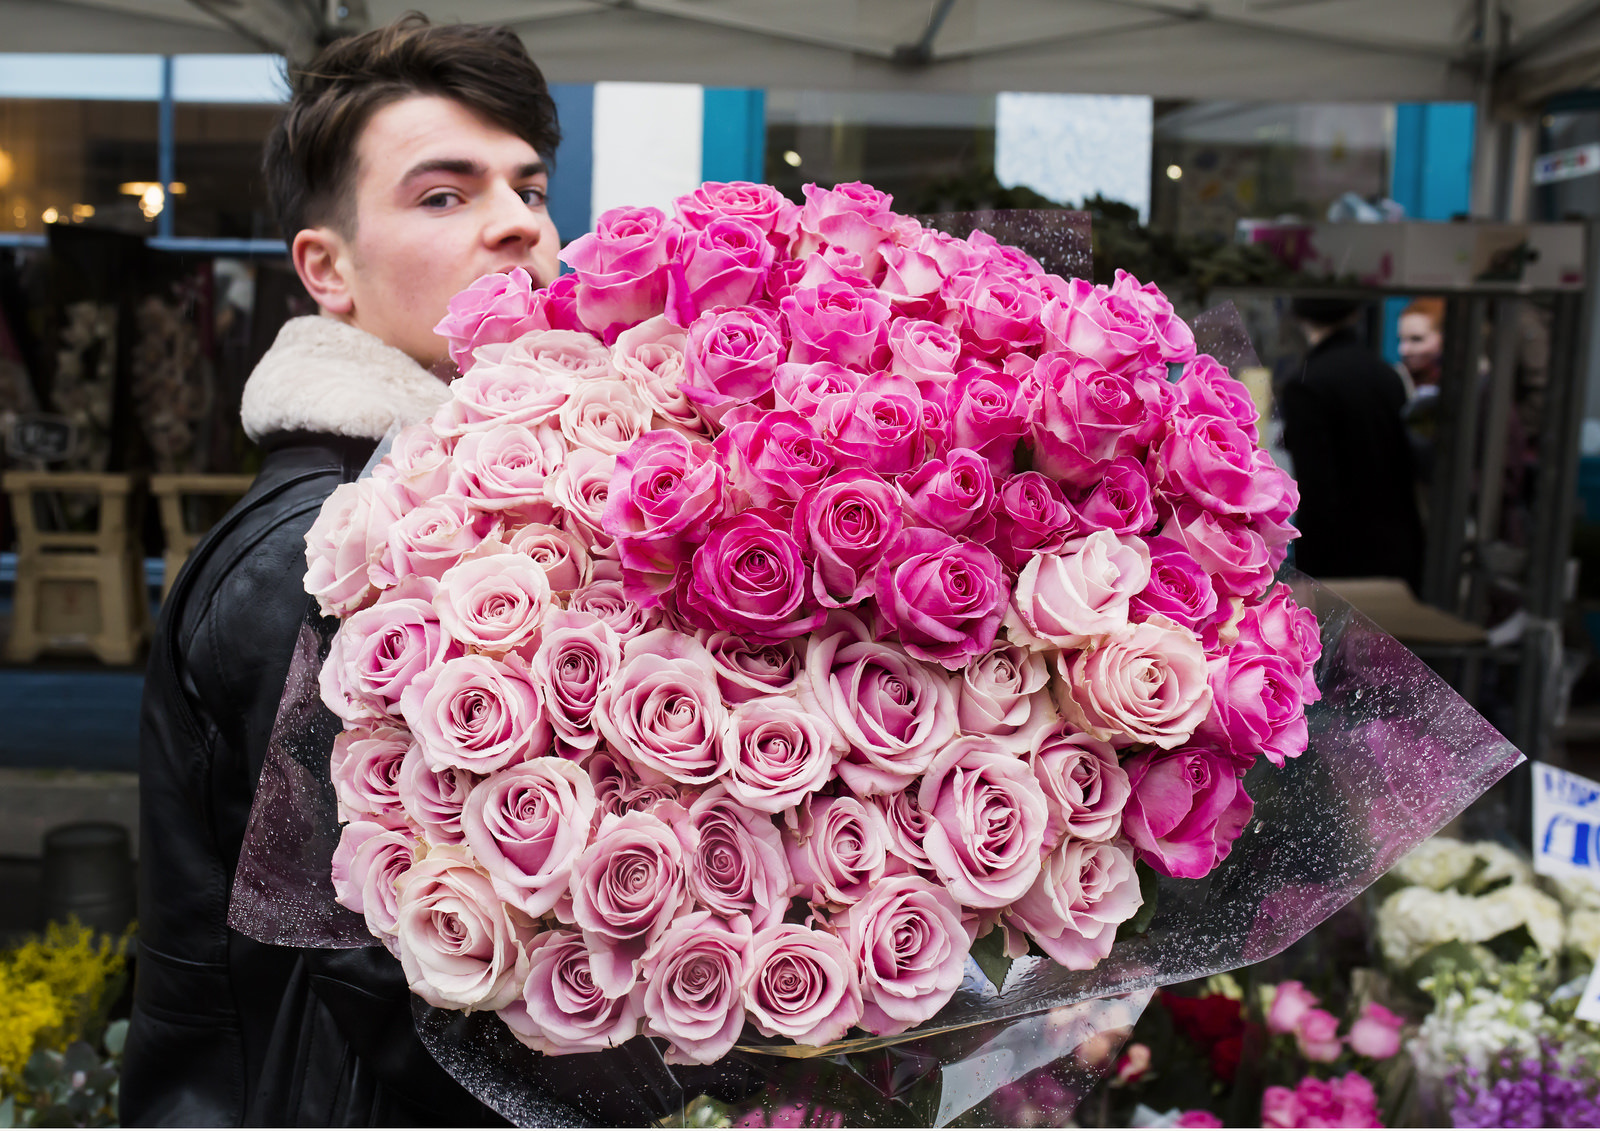 A big bunch of roses at Columbia Road Flower Market.